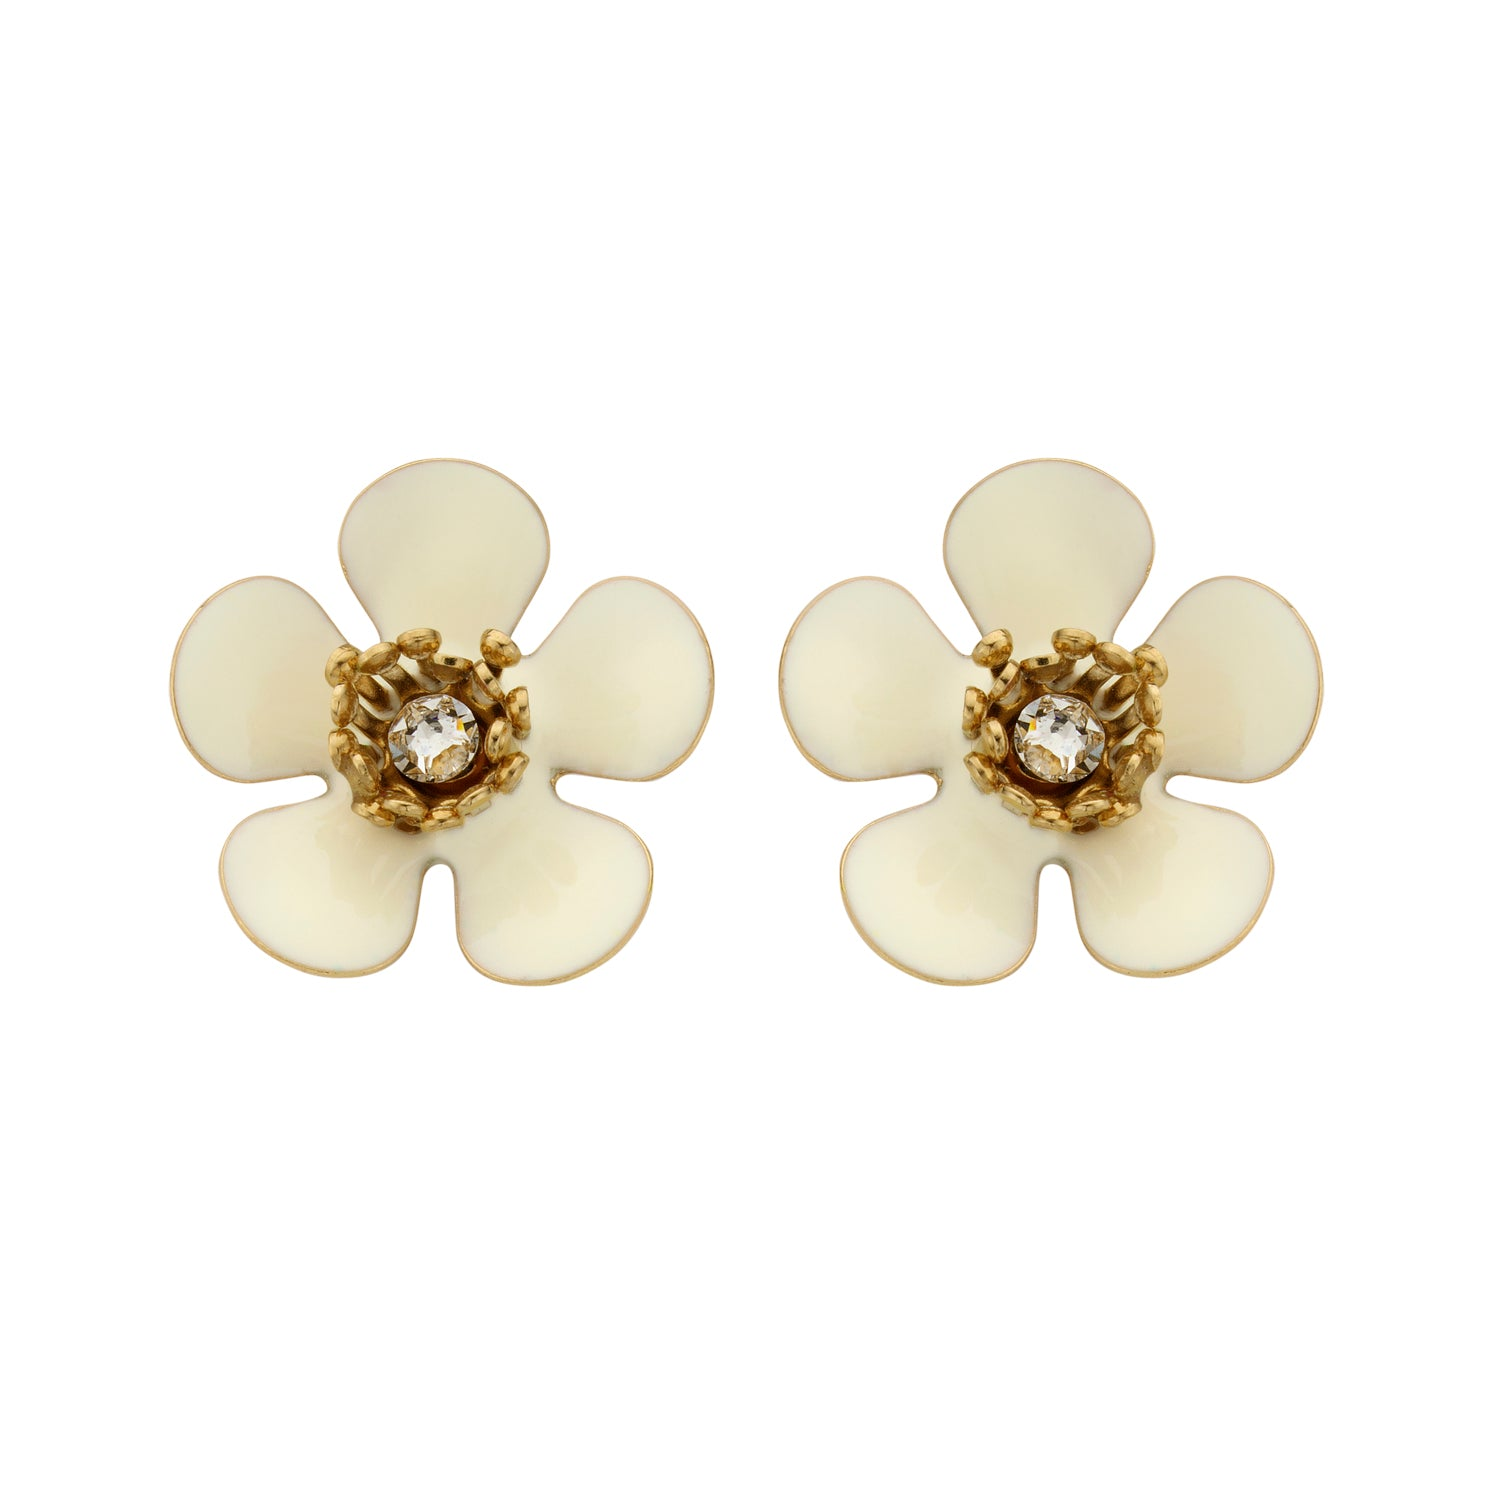 Gina mini enamel flower ecru earrings